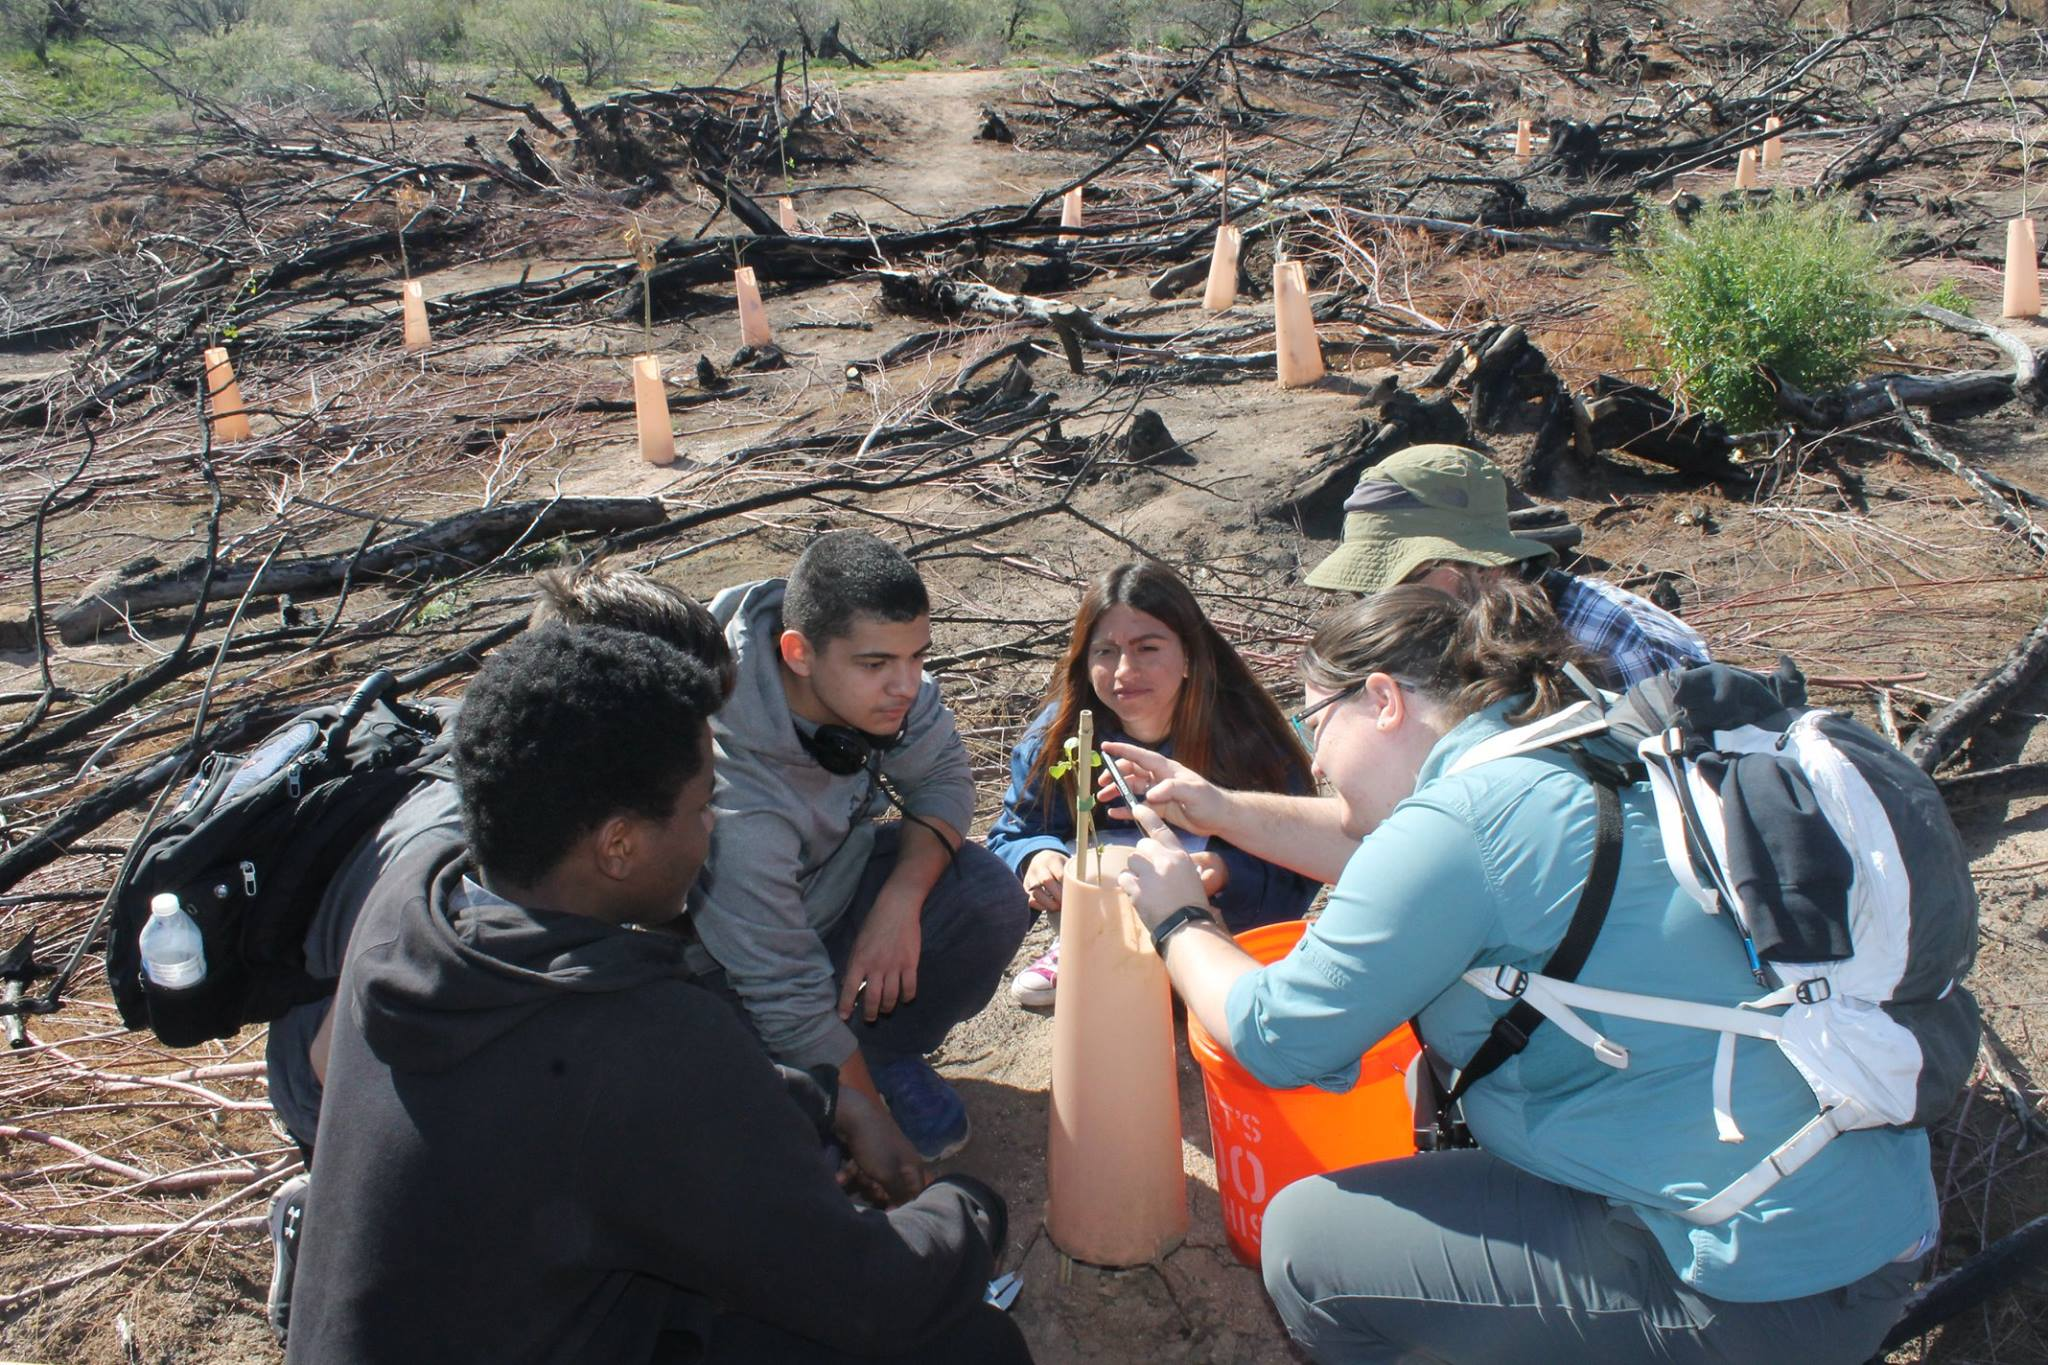 Audubon Arizona's River Pathways Introduces Students To Conservation Careers Thanks To APS Grant